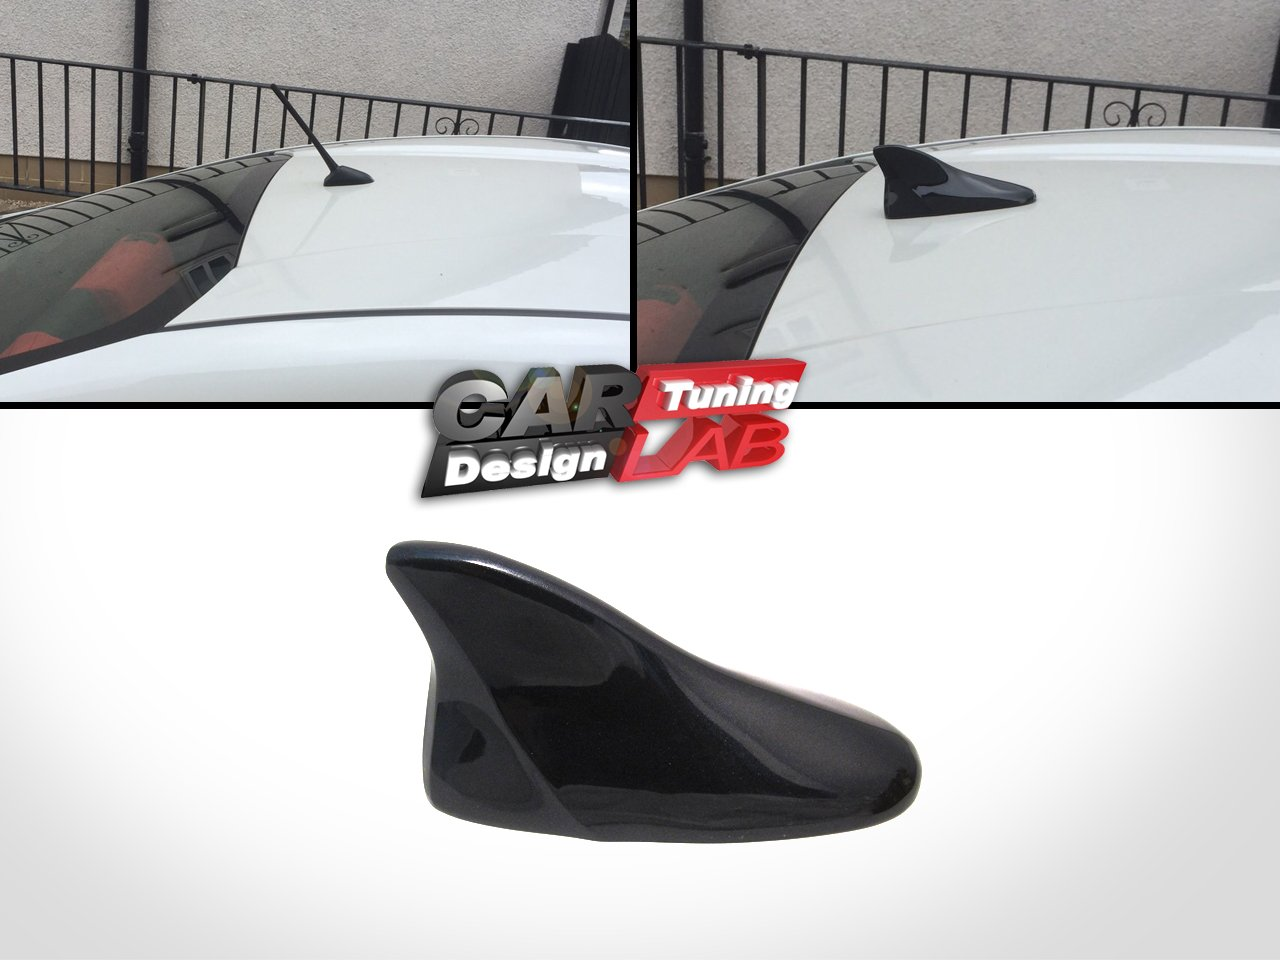 SHINNY BLACK Shark Fin Base Roof Antenna Cover painted Fits Scion FRS FR-S Subaru BRZ CAR LAB